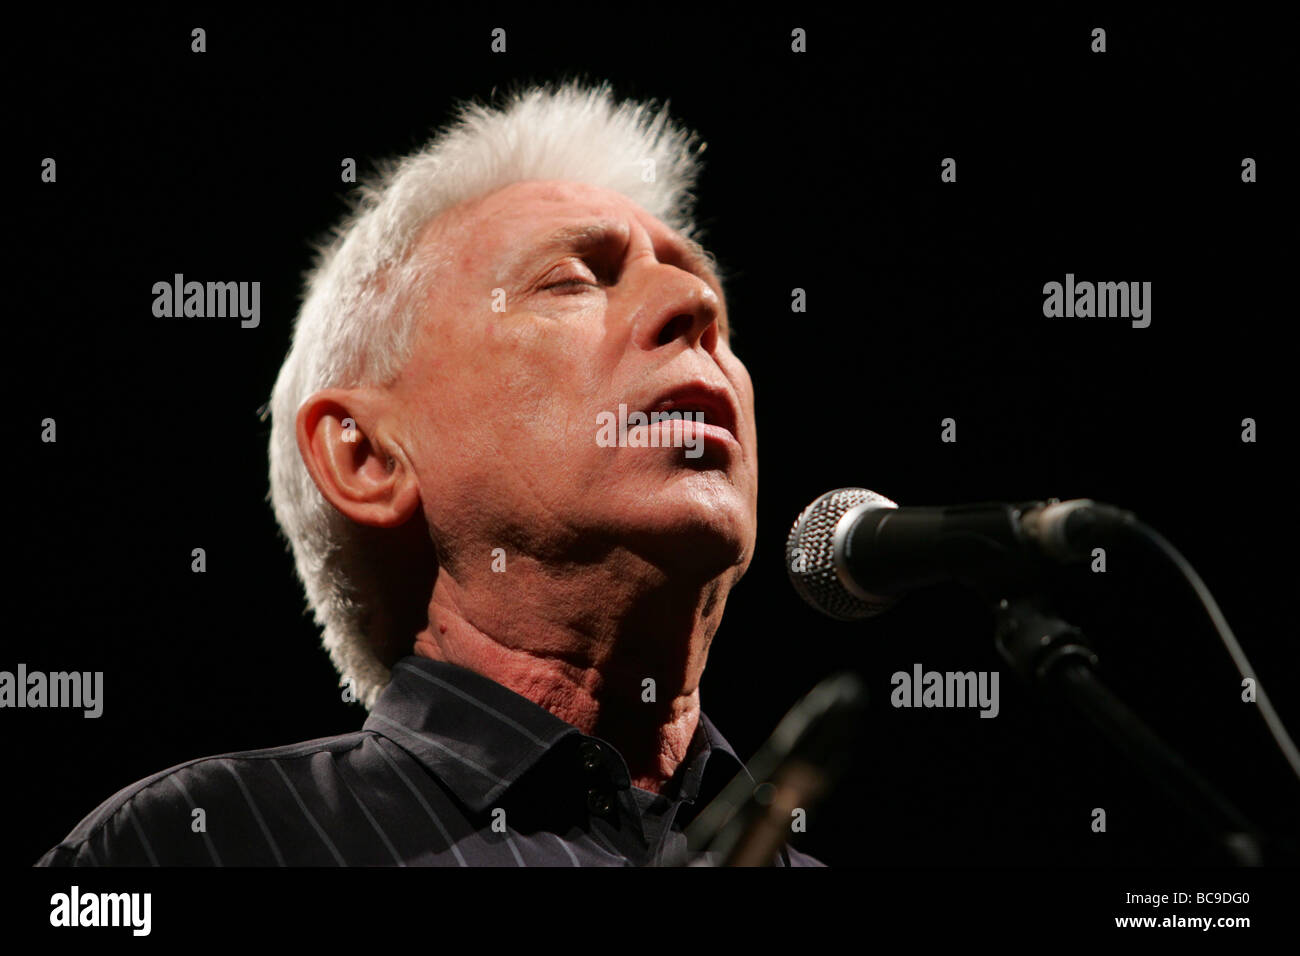 Catalan spanish singer Raimon is seen during a concert on 2008 in Madrid university Spain - Stock Image